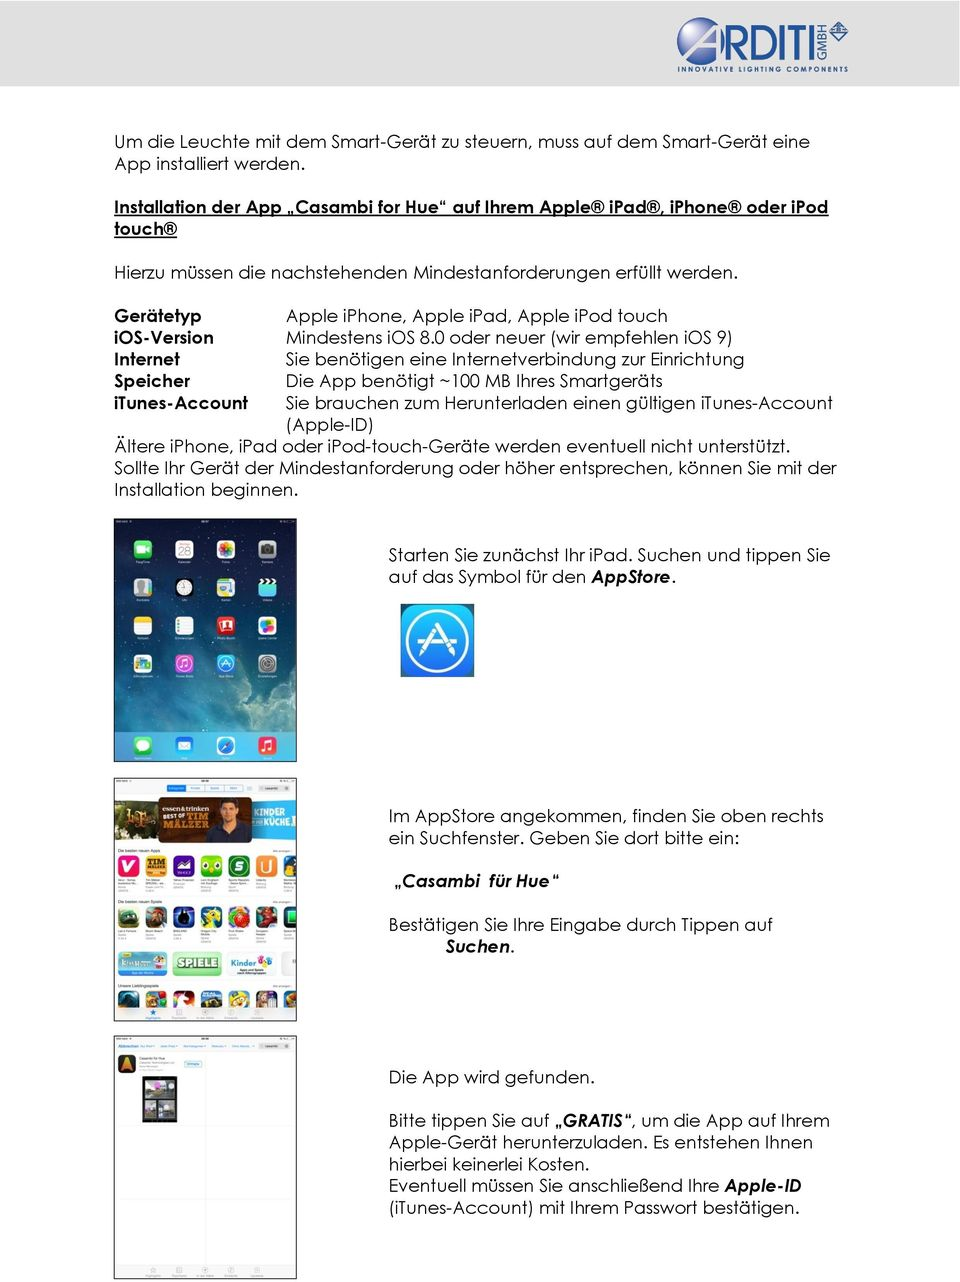 Gerätetyp Apple iphone, Apple ipad, Apple ipod touch ios-version Mindestens ios 8.